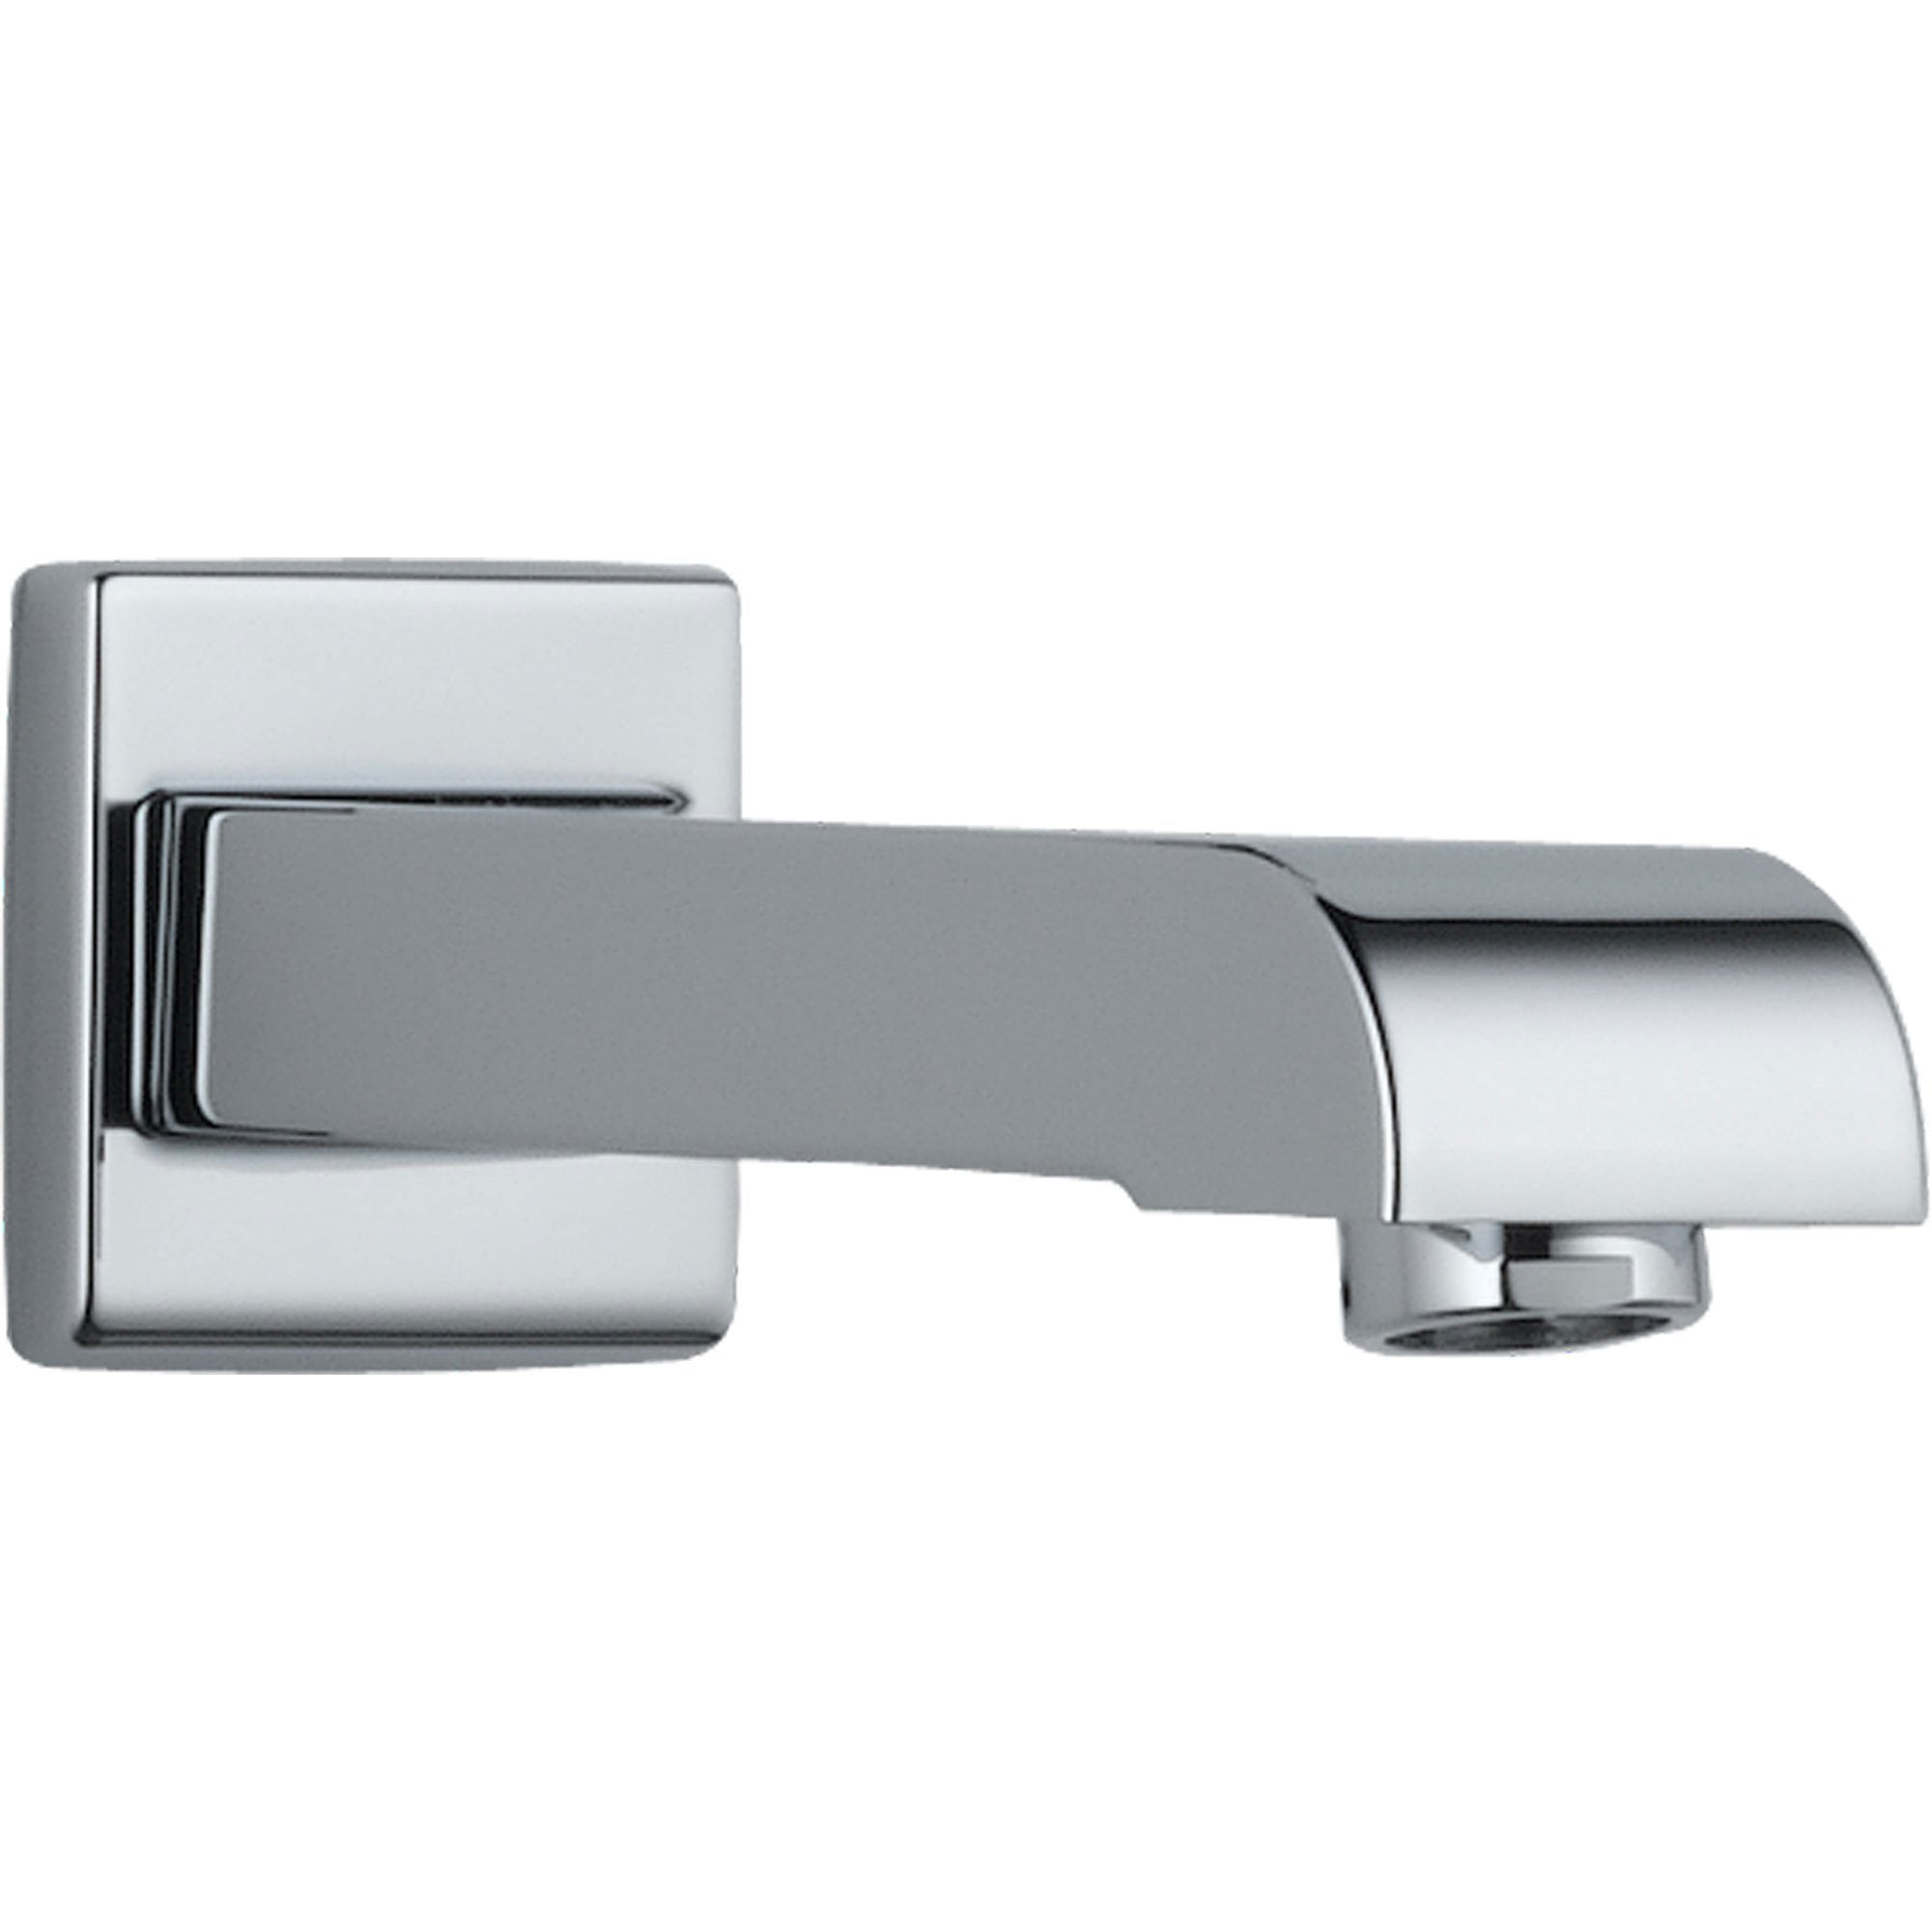 Delta Arzo Modern 7 inch Metal Non-Diverter Tub Spout in Chrome ...